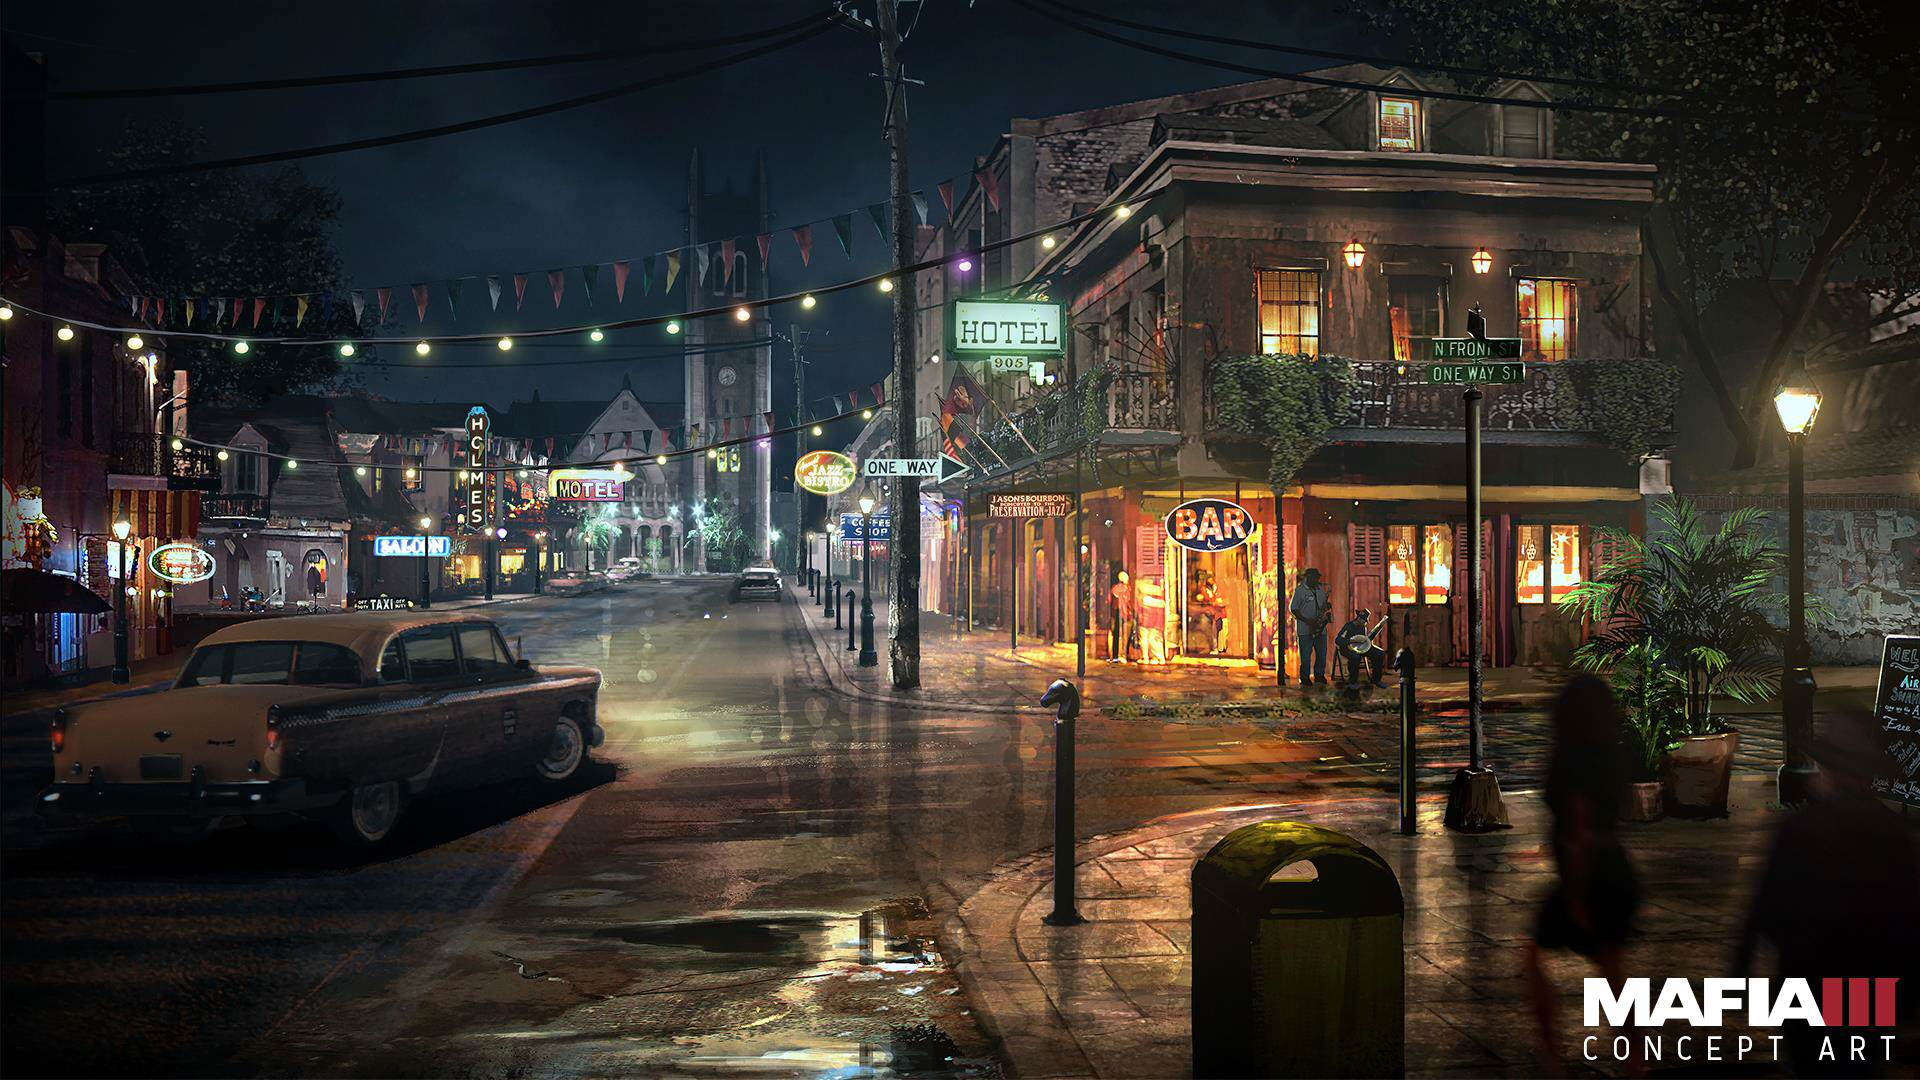 Check Out Every Awesome Piece Of Mafia 3 Concept Art Released mafia3 french quarter